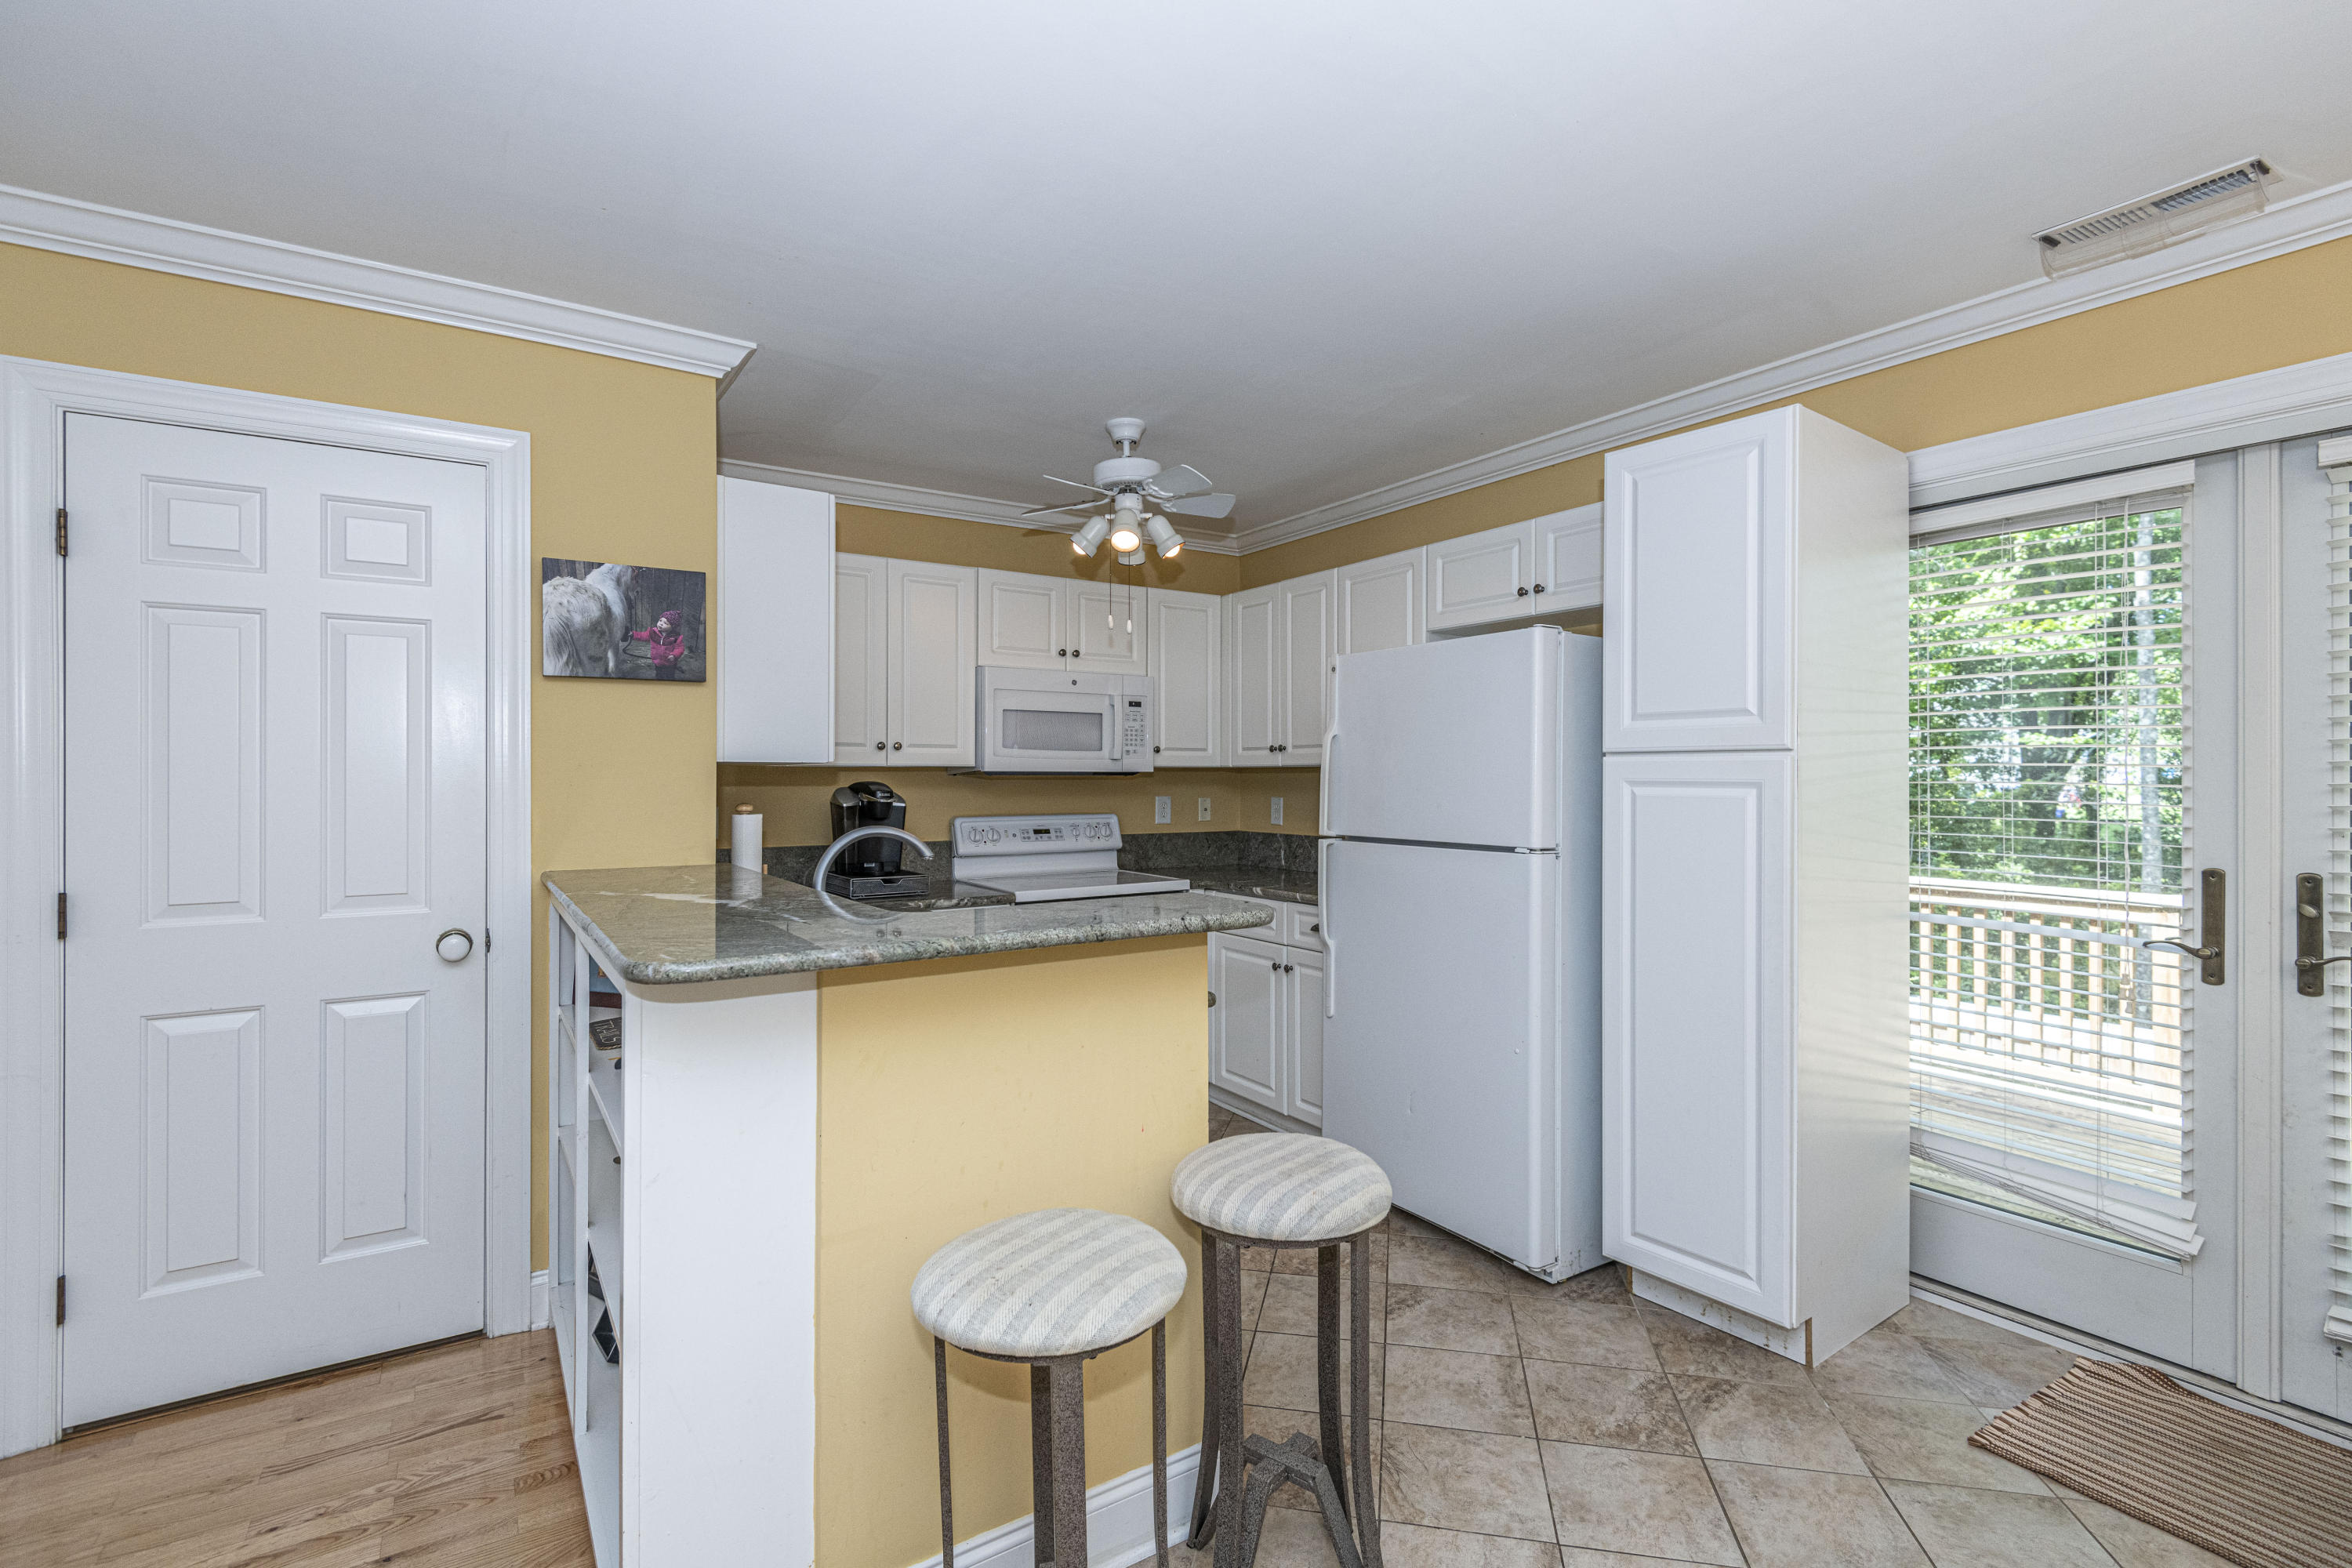 The Reserve at Wando East Homes For Sale - 1681 Lauda, Mount Pleasant, SC - 0